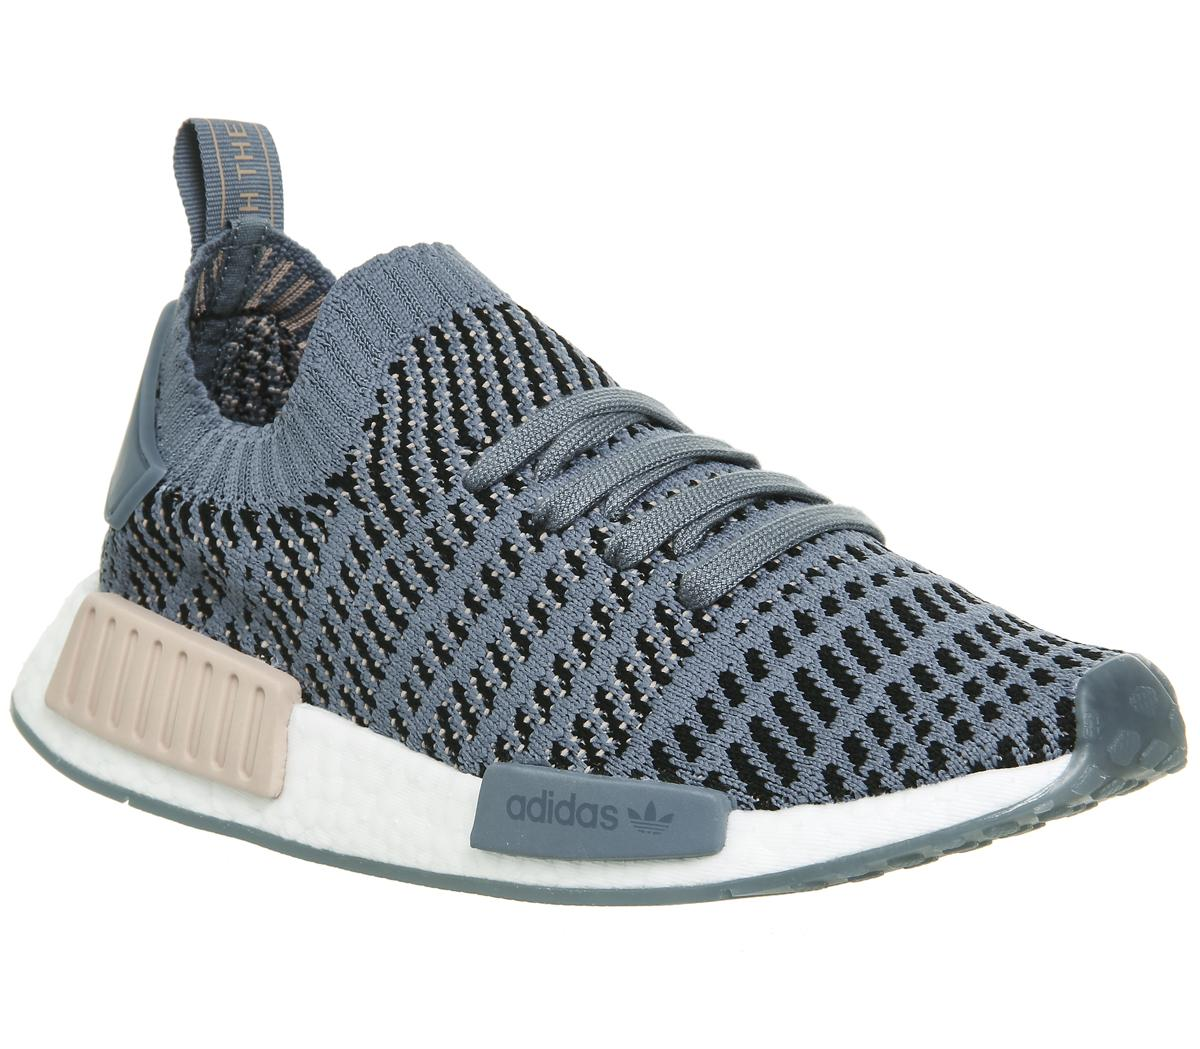 adidas Nmd R1 Prime Knit Trainers Raw